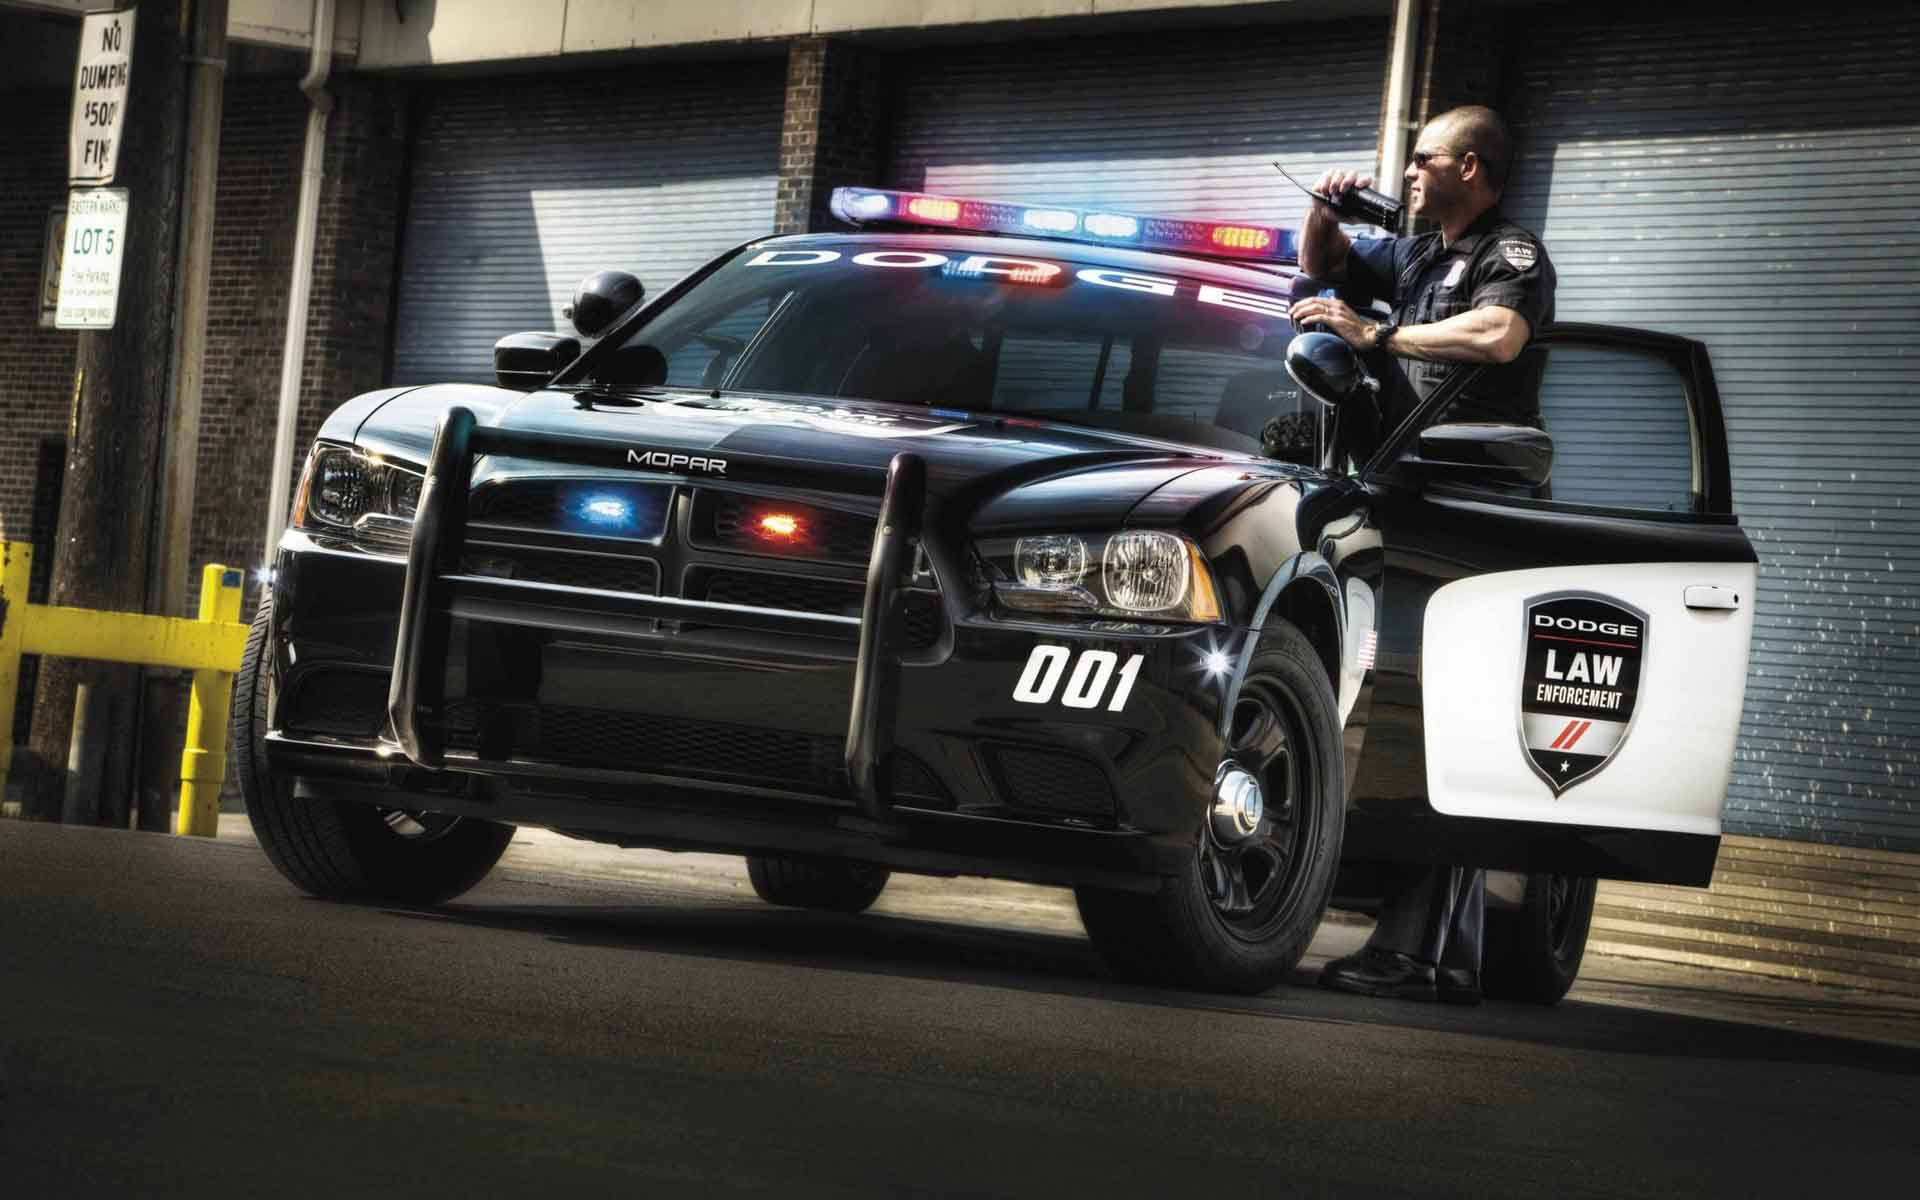 Police Car Wallpapers - Wallpaper Cave